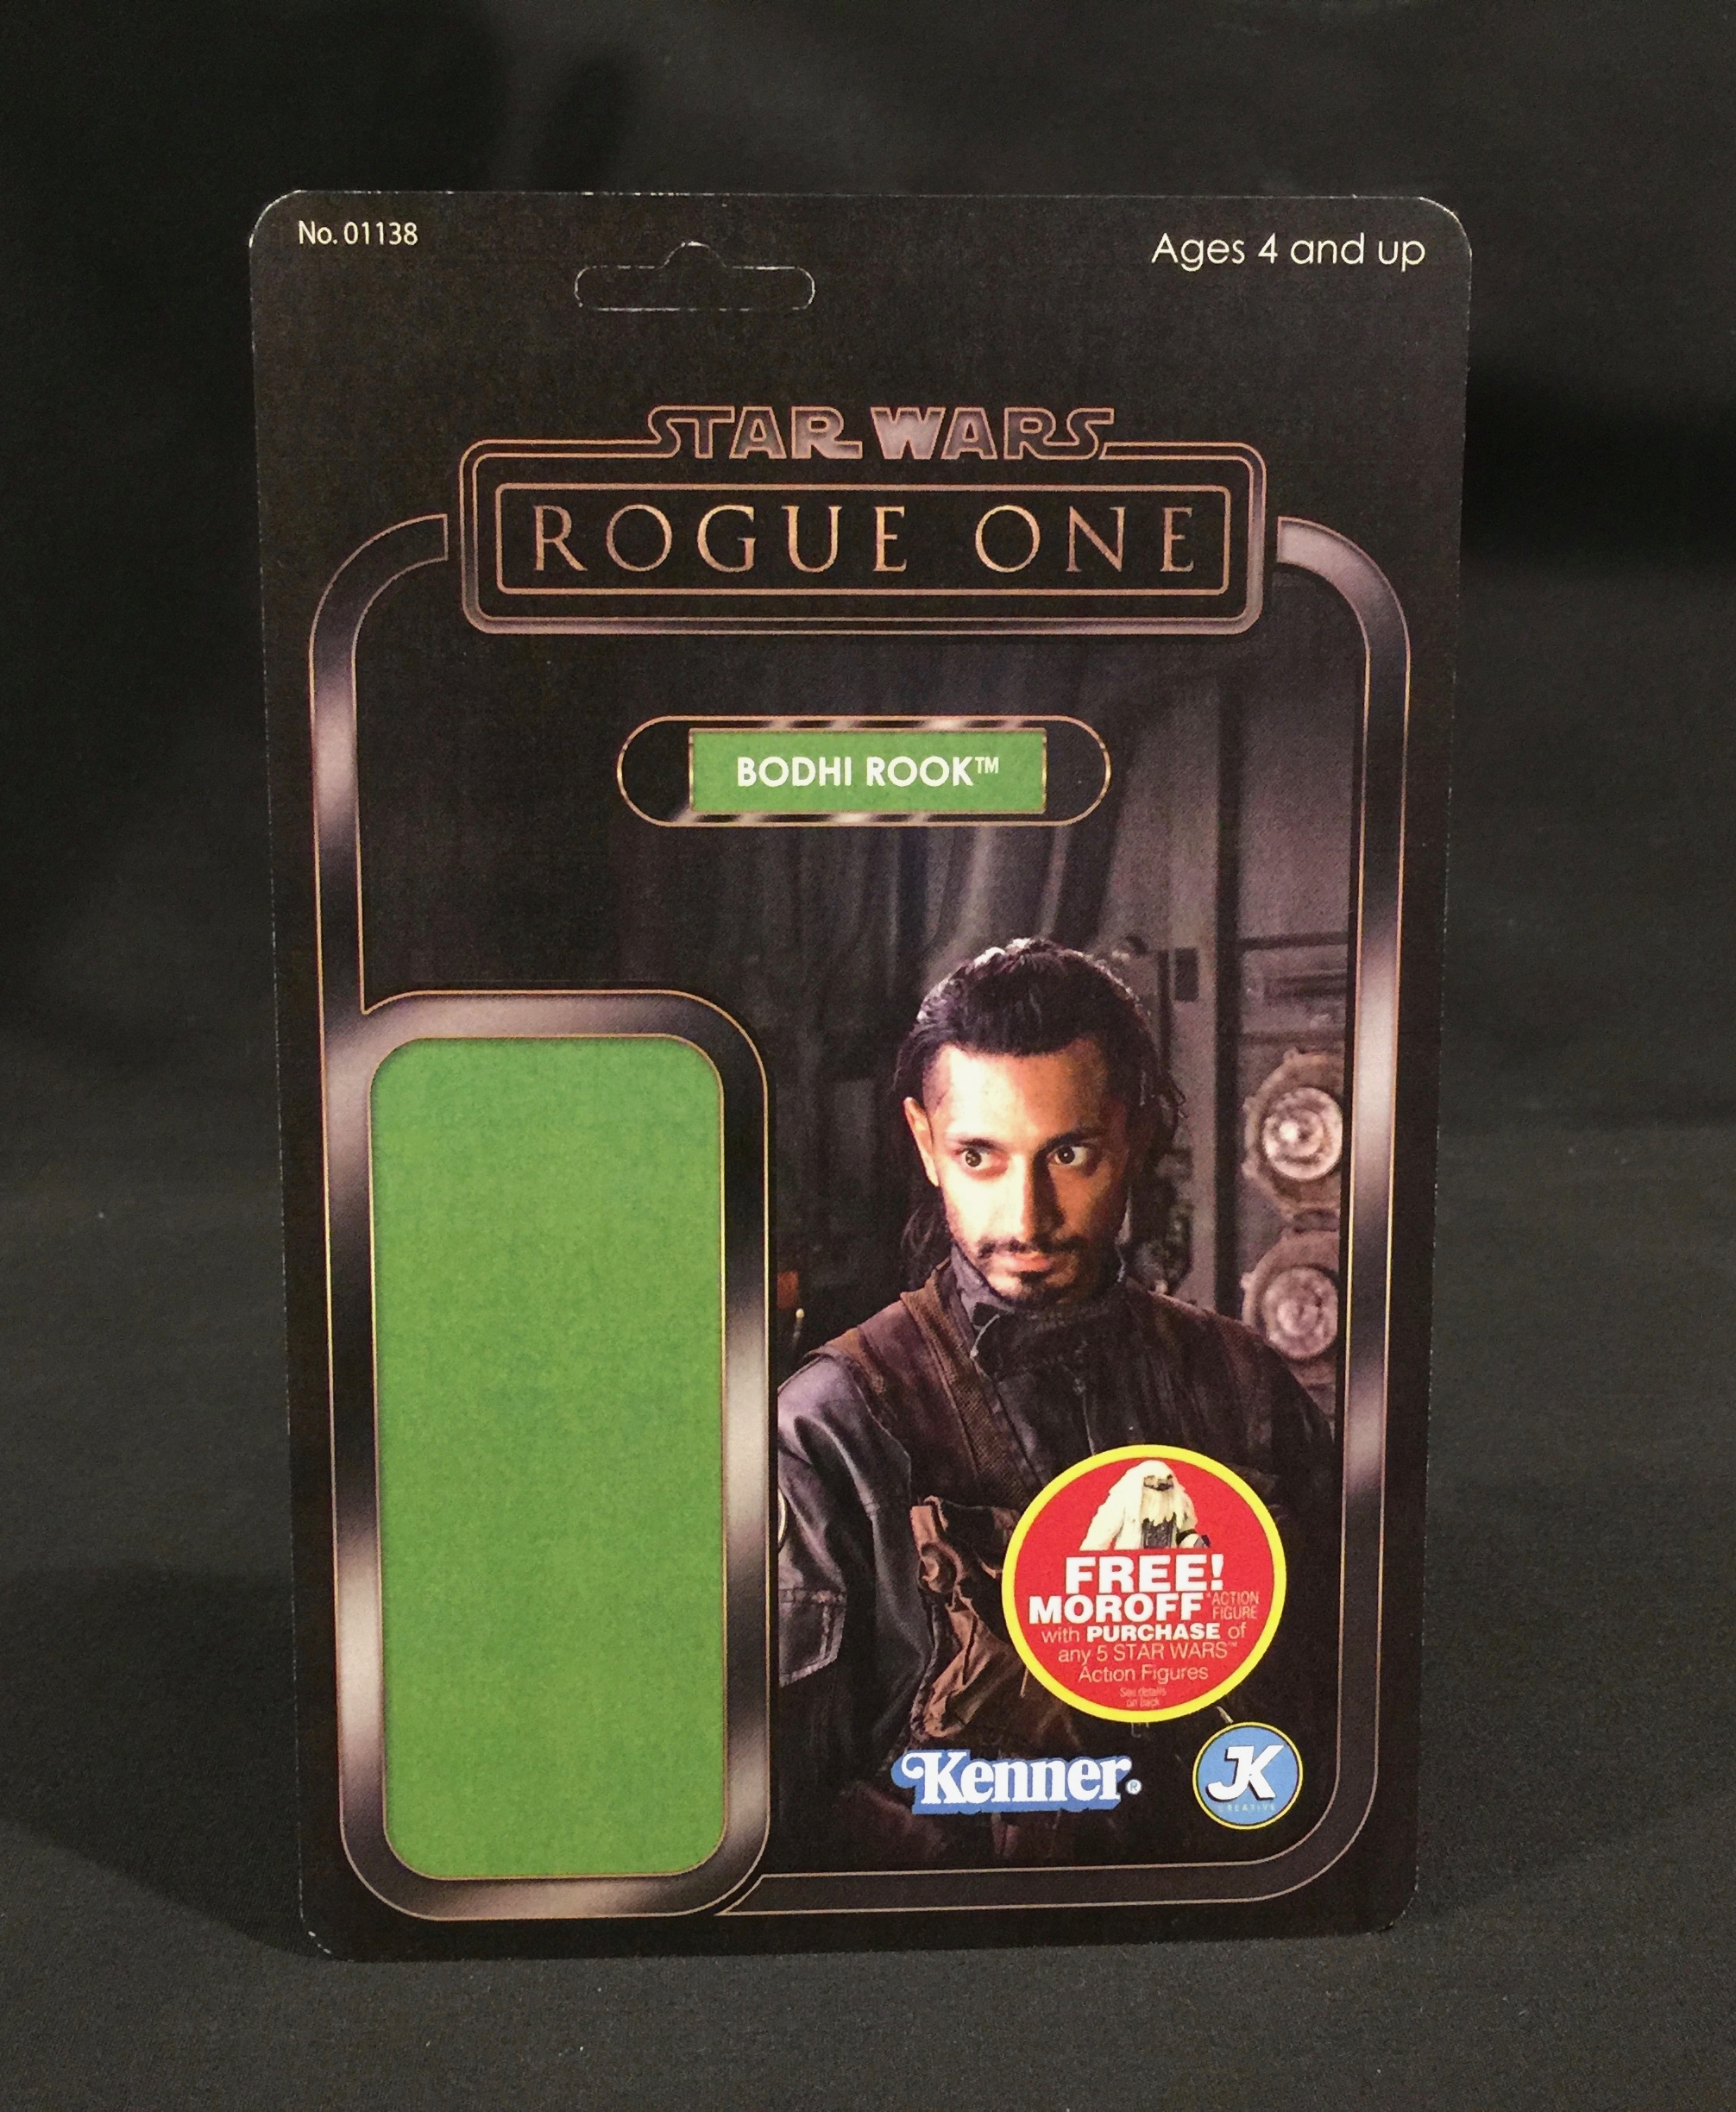 Bodhi Rook - Rogue One